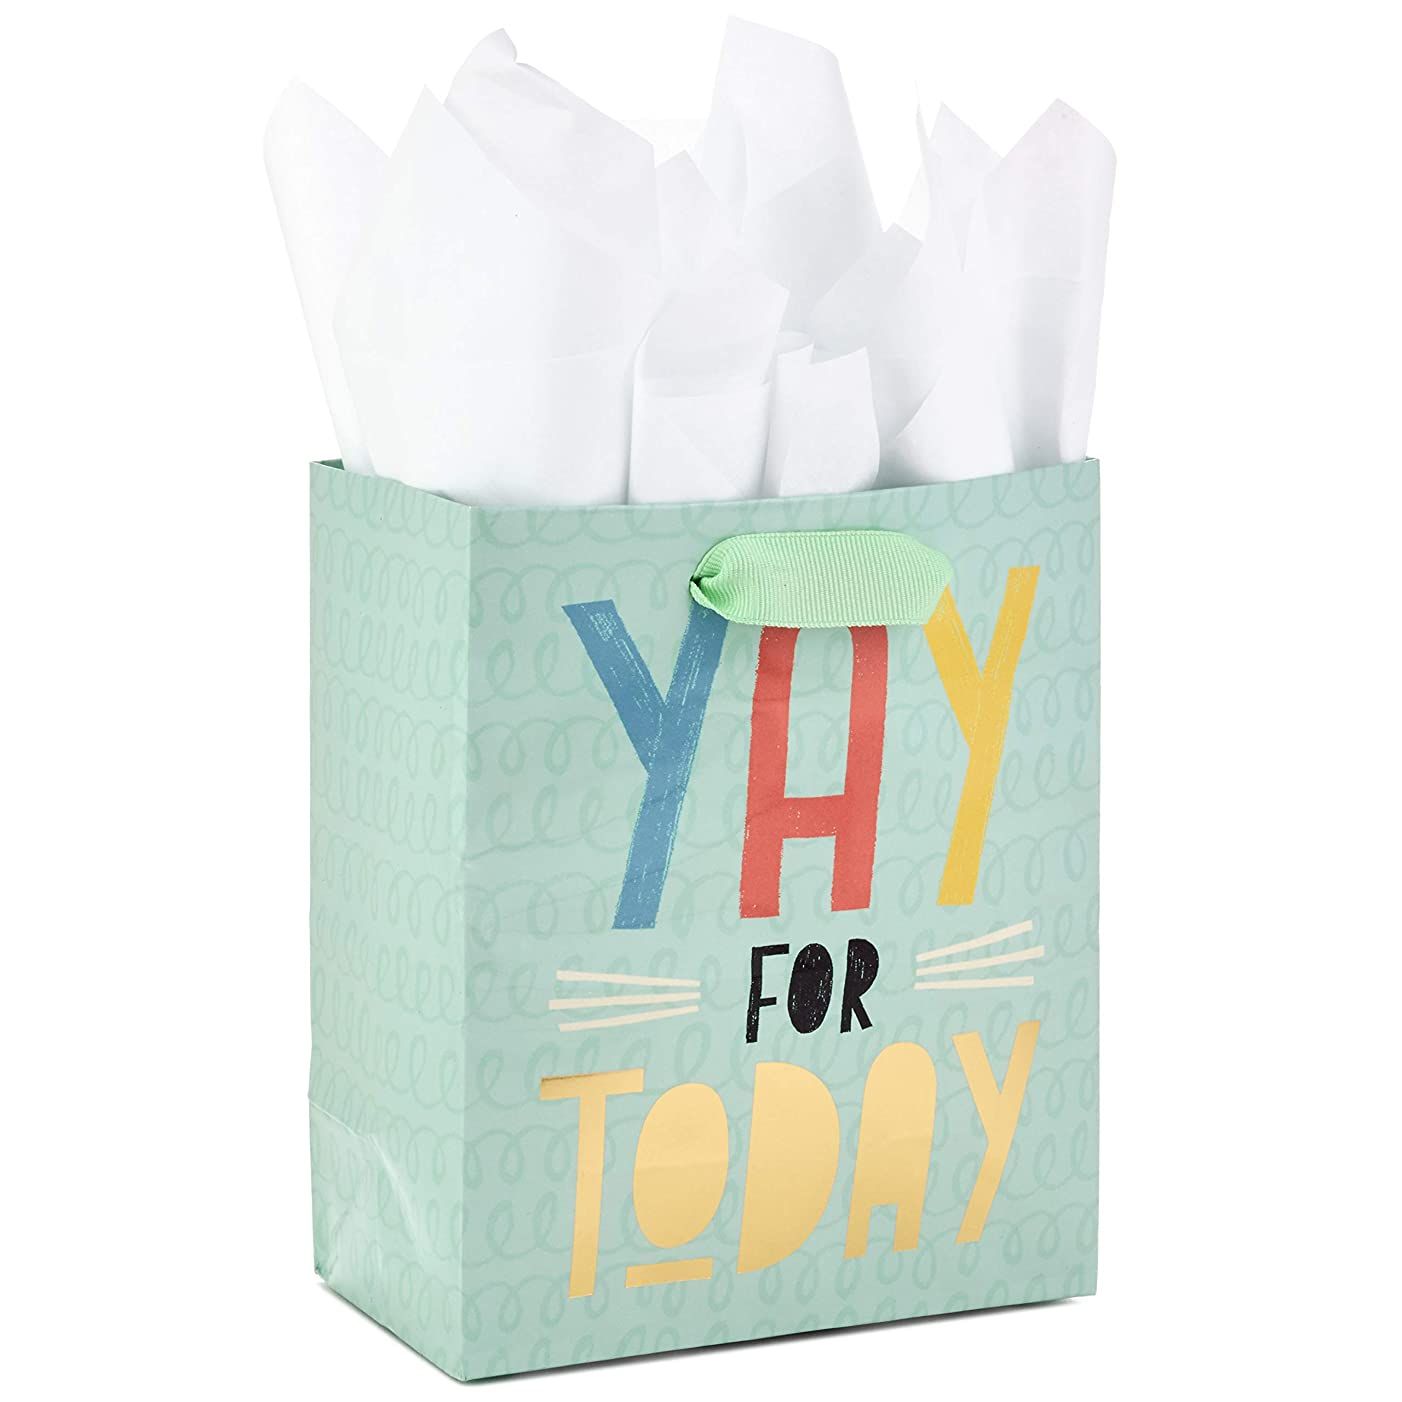 Hallmark Small Gift Bag with Tissue Paper for Birthdays, Graduations, Weddings, or Any Occasion (Yay For Today)